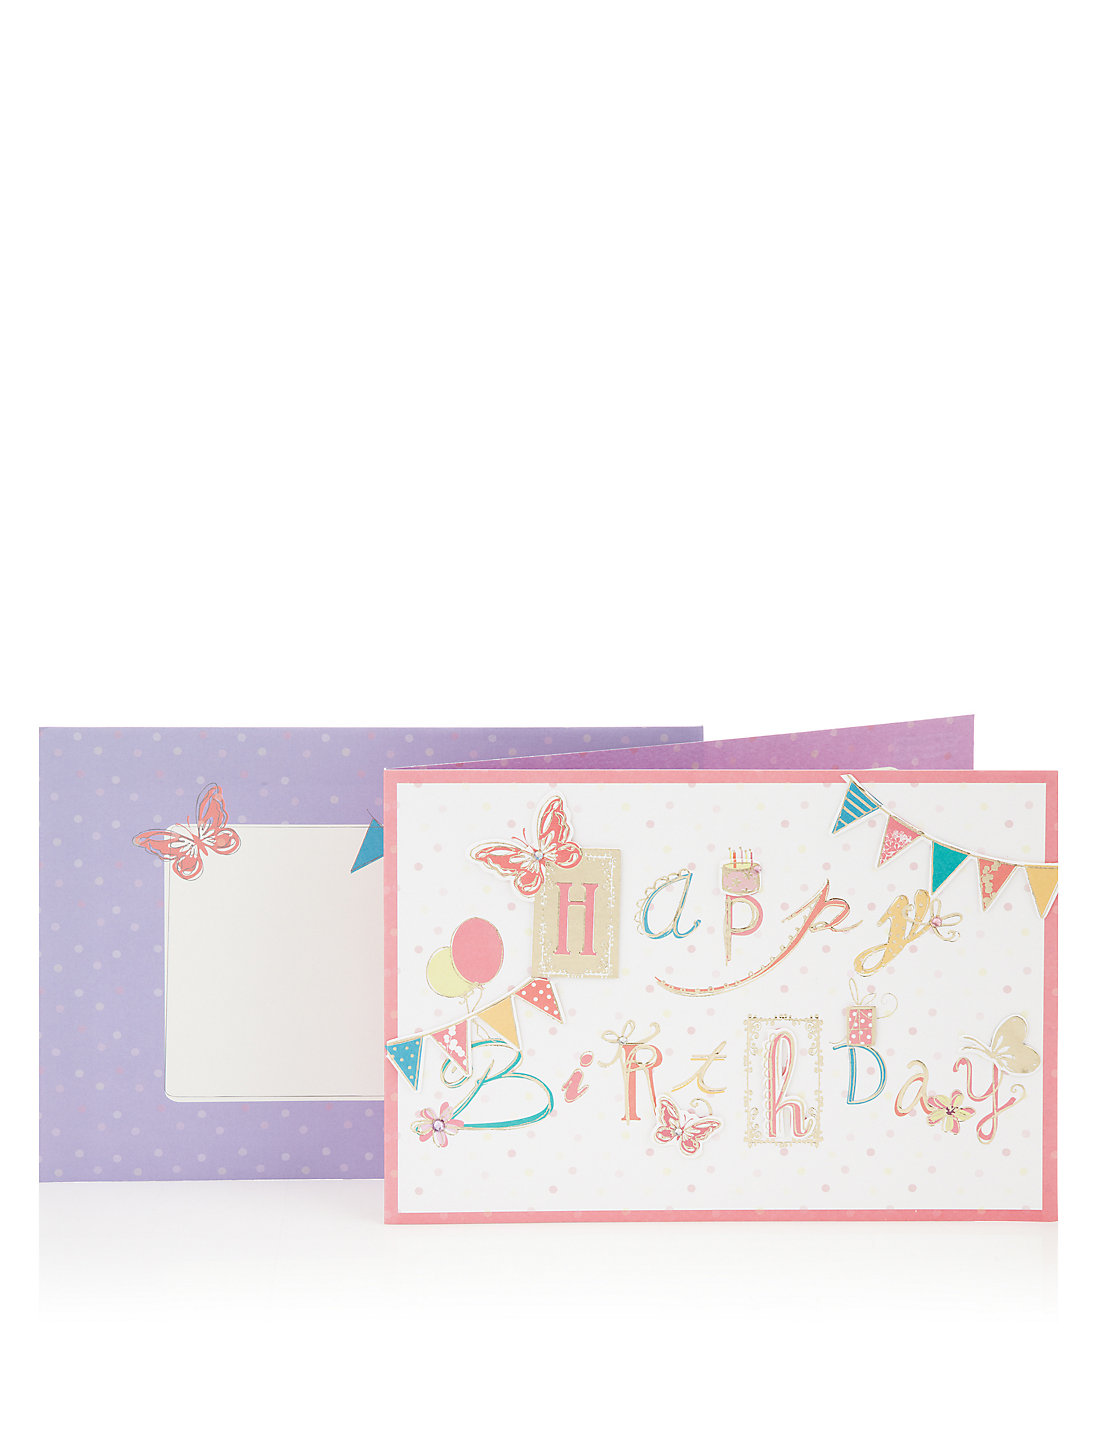 Happy birthday banners greetings card ms happy birthday banners greetings card kristyandbryce Image collections